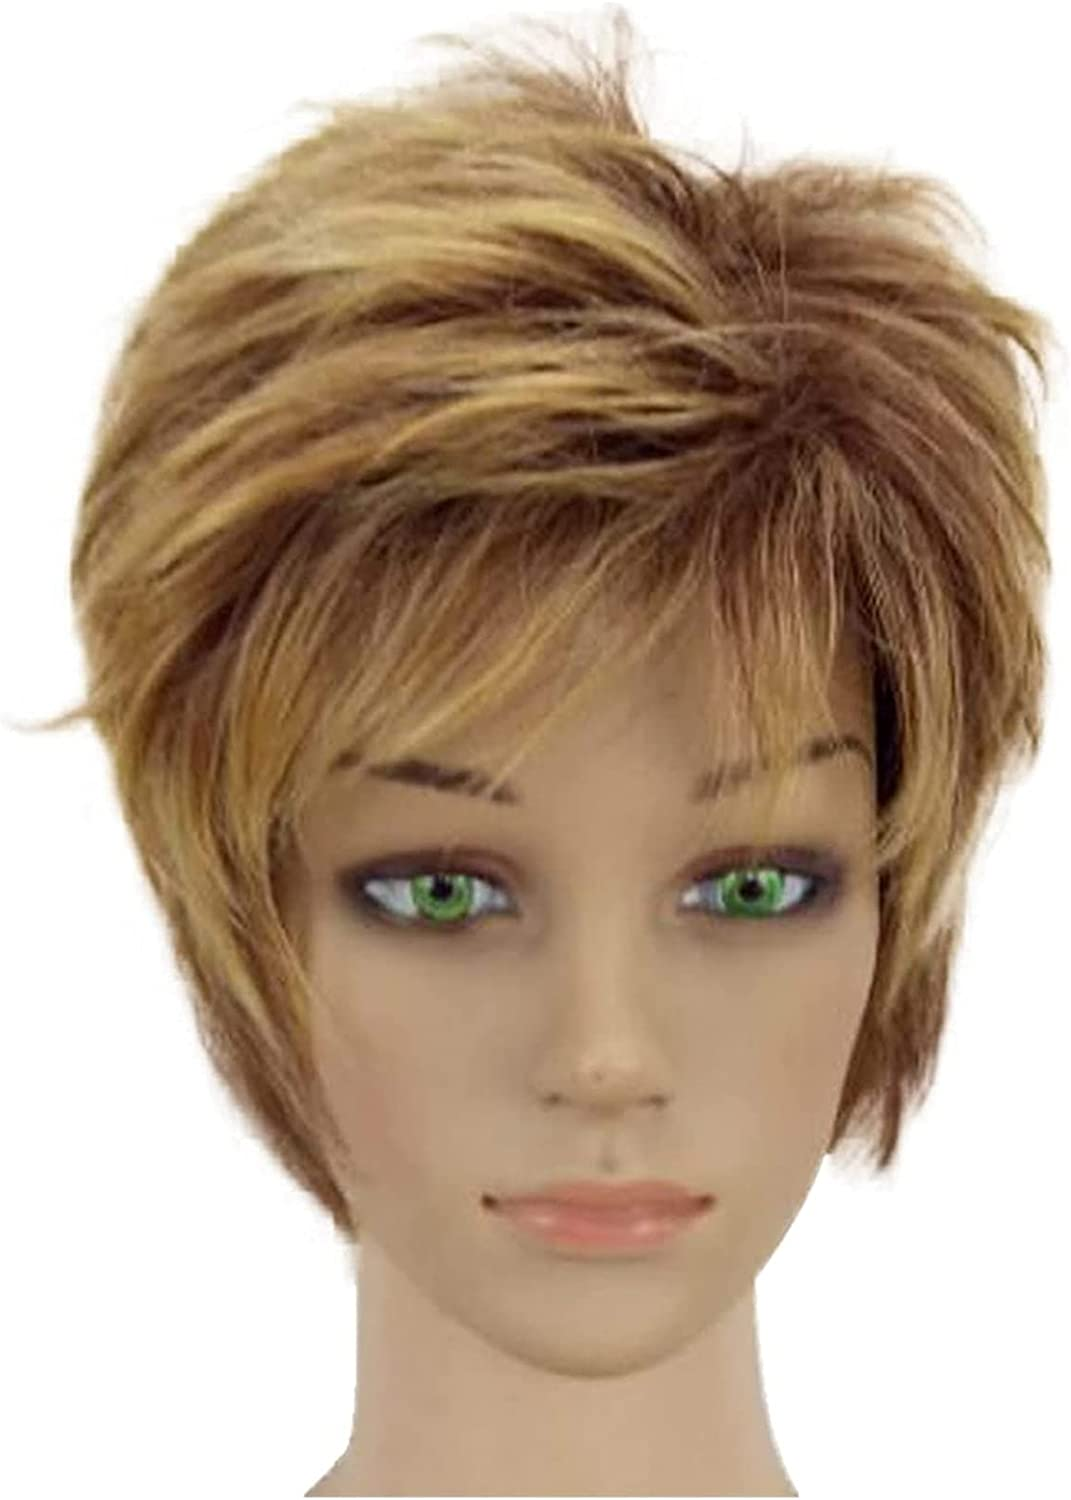 LCNING Wig Wigs Synthetic Hair Blonde Short Max 55% High quality new OFF Woman Light Layered